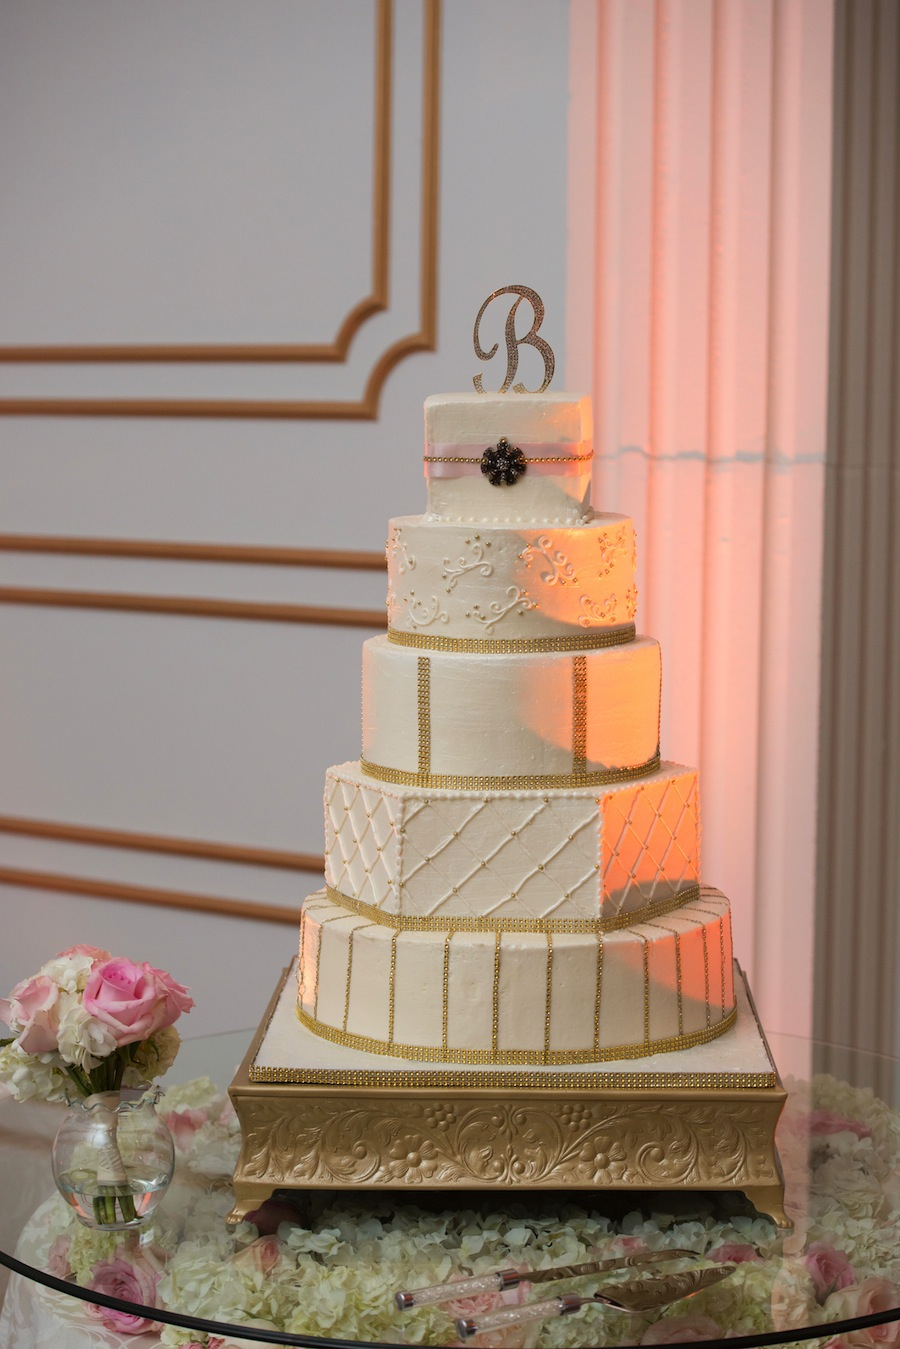 Five Tier, Ivory Wedding Cake with Gold Accents and Monogrammed Initial Cake Topper